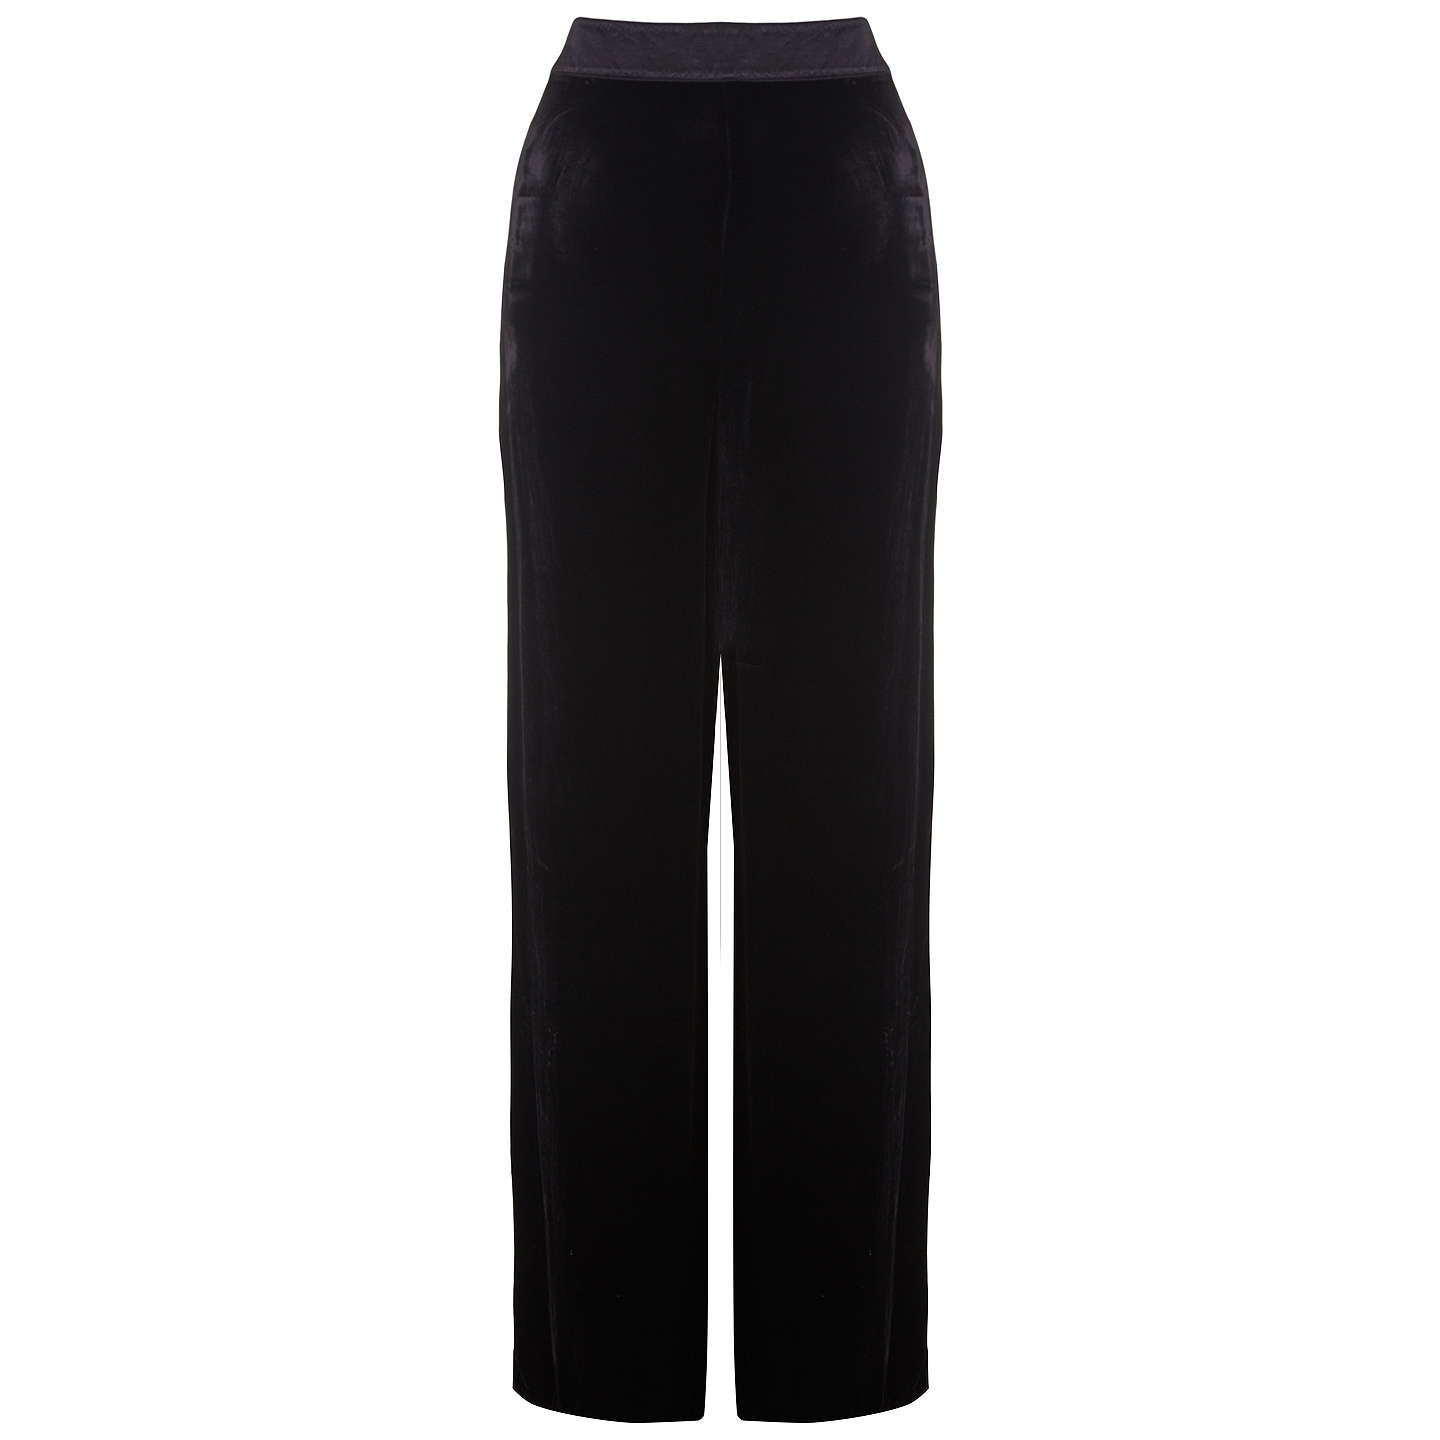 BuyGhost Leila Trousers, Black, XXS Online at johnlewis.com